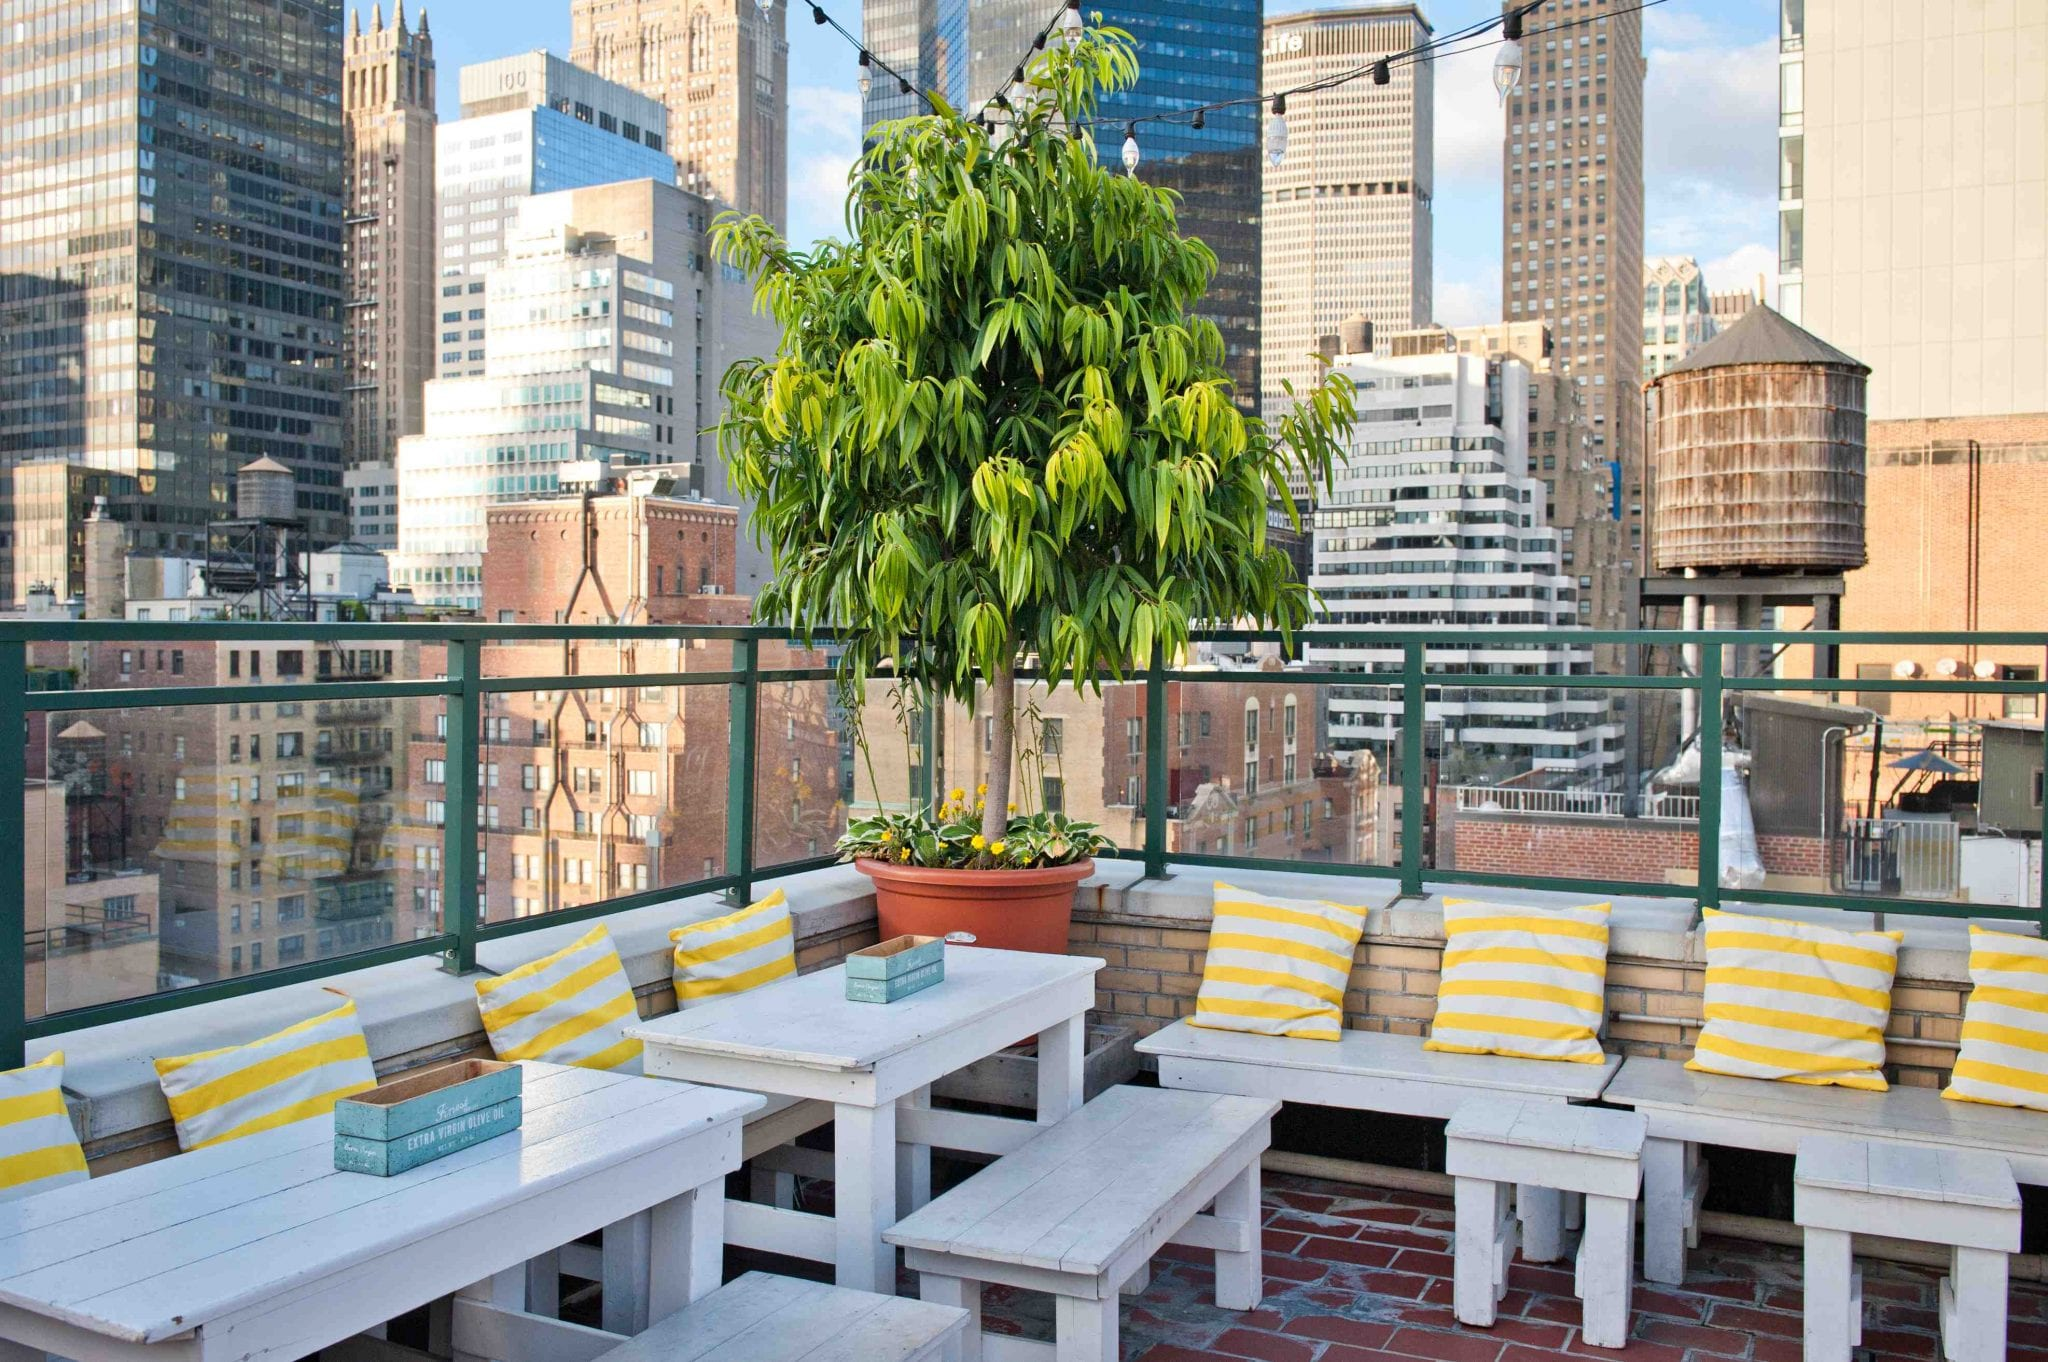 Perspective view of the New York City Skyline from the Rare View Rooftop. Wooden white benches and tables are place all along this corner.